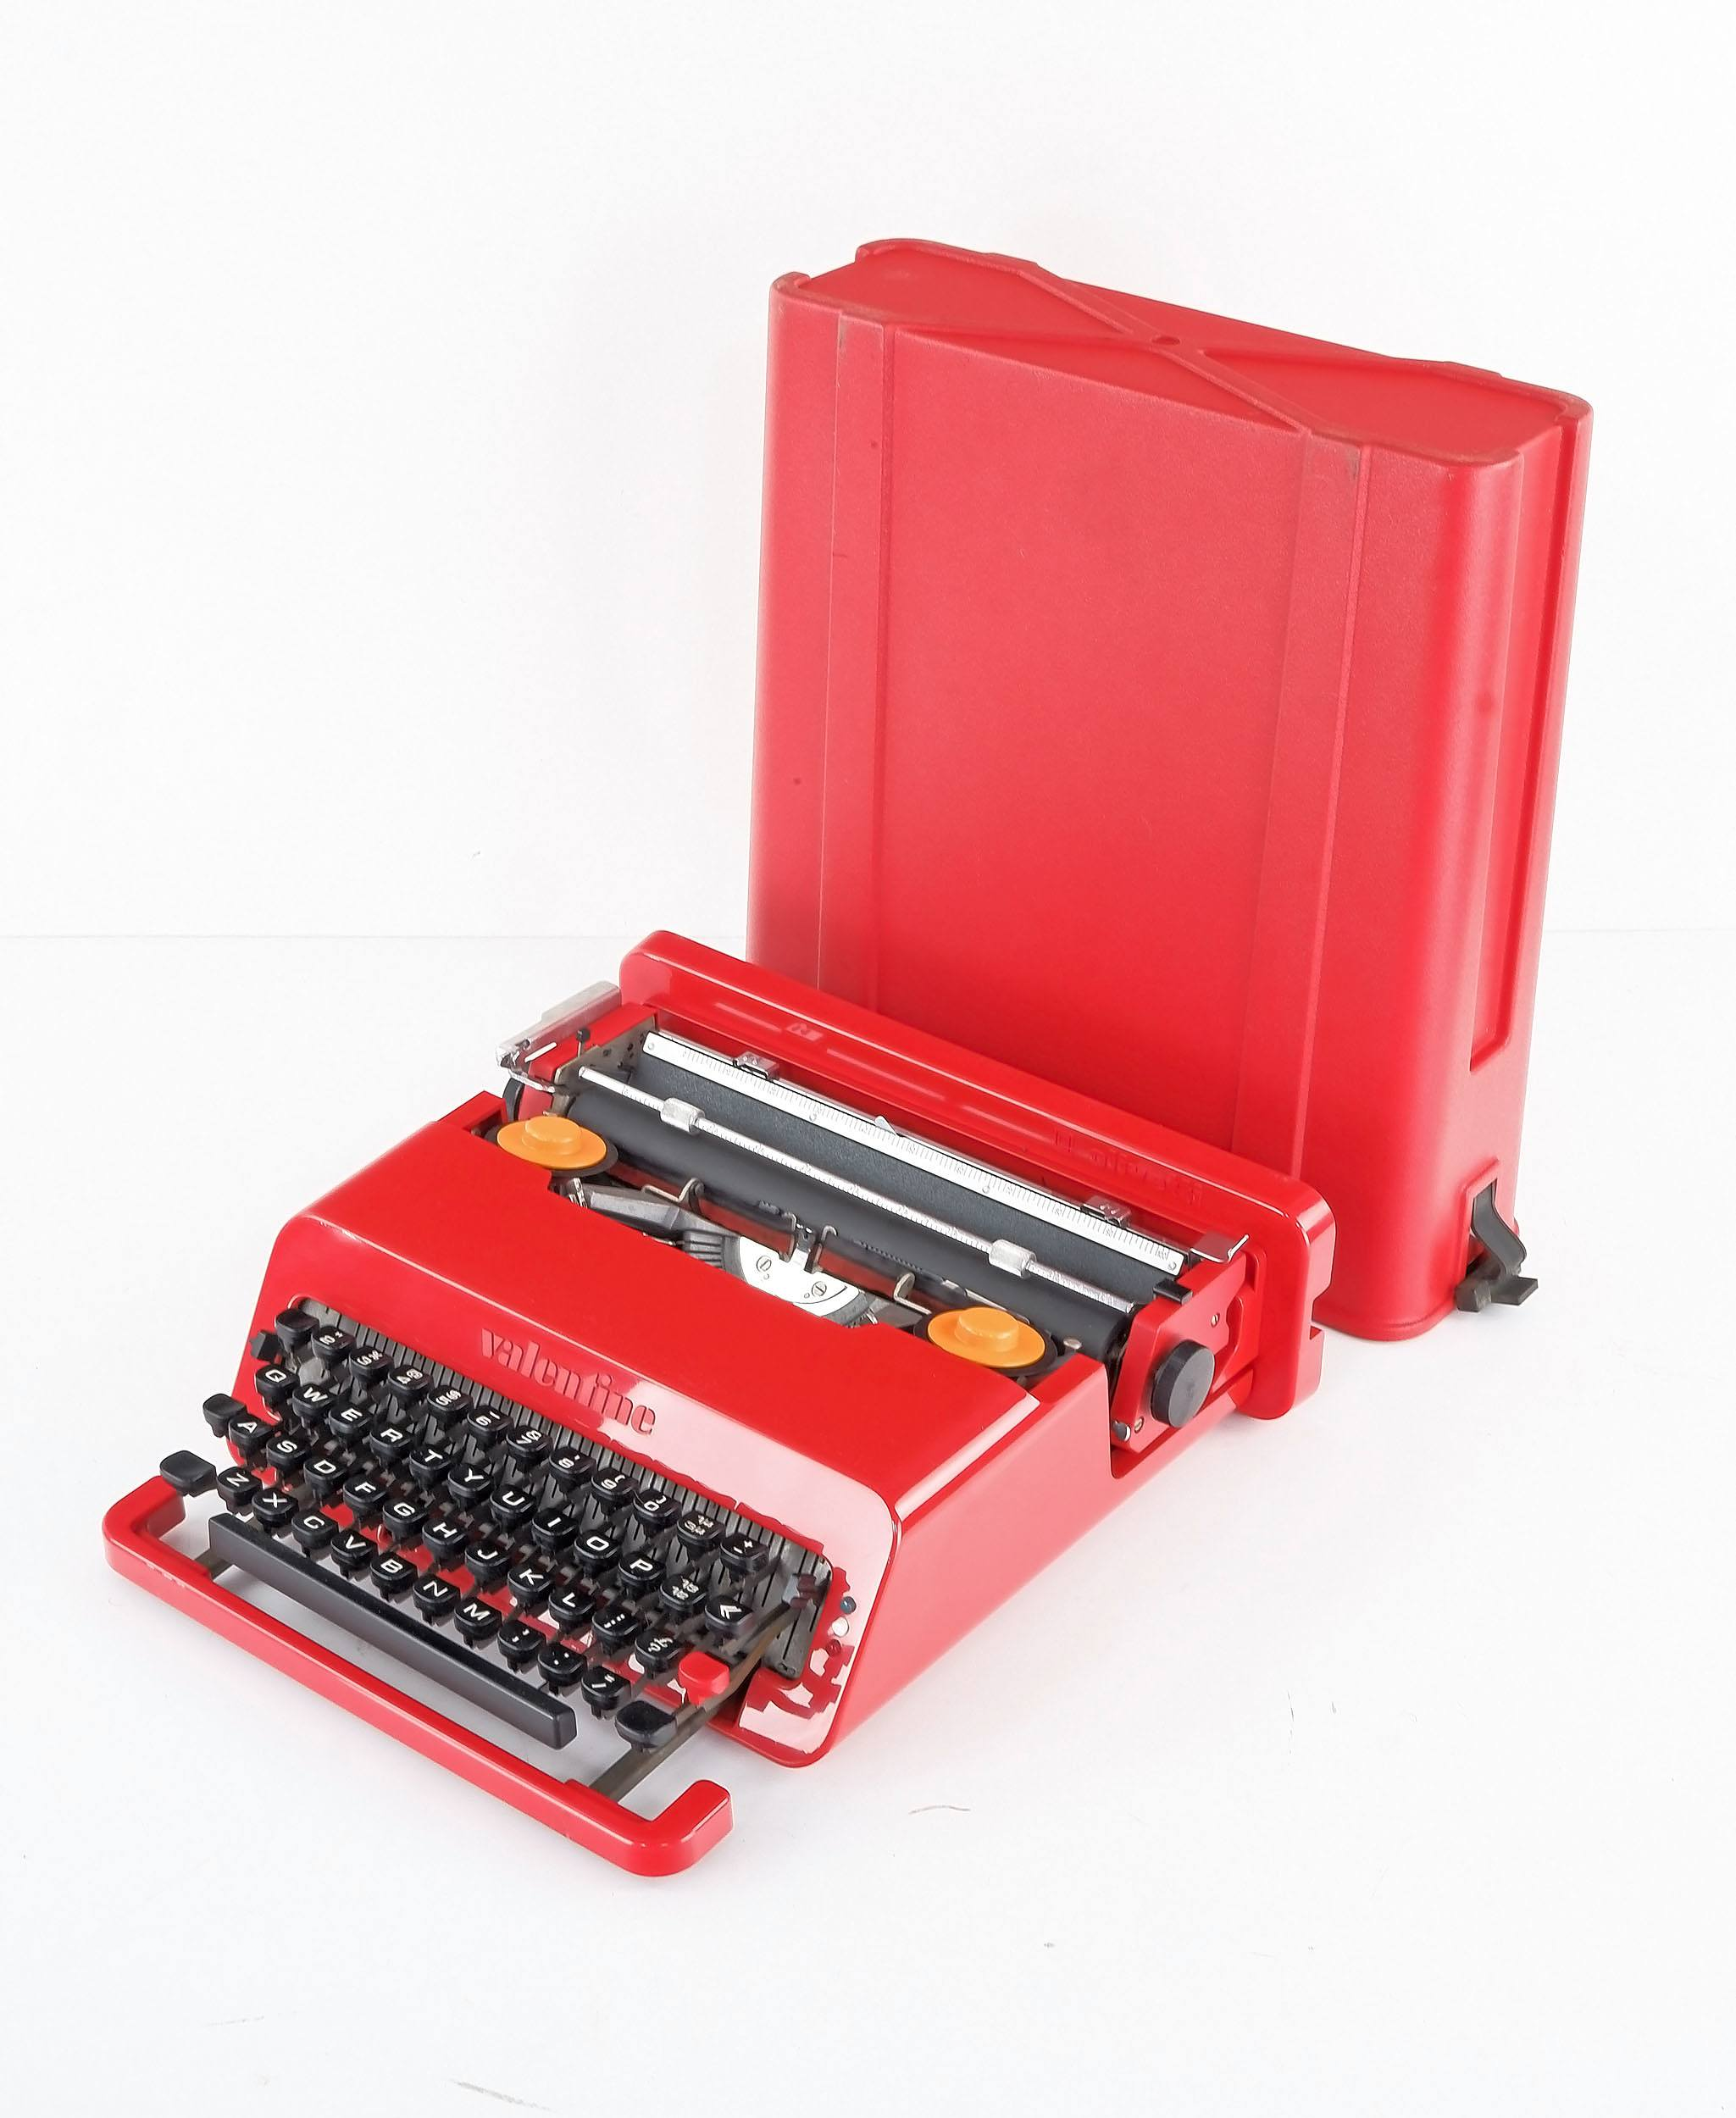 'Olivetti Valentine Typewriter with Original Case, Designed by Ettore Sottsass and Perry King, Circa 1960s'